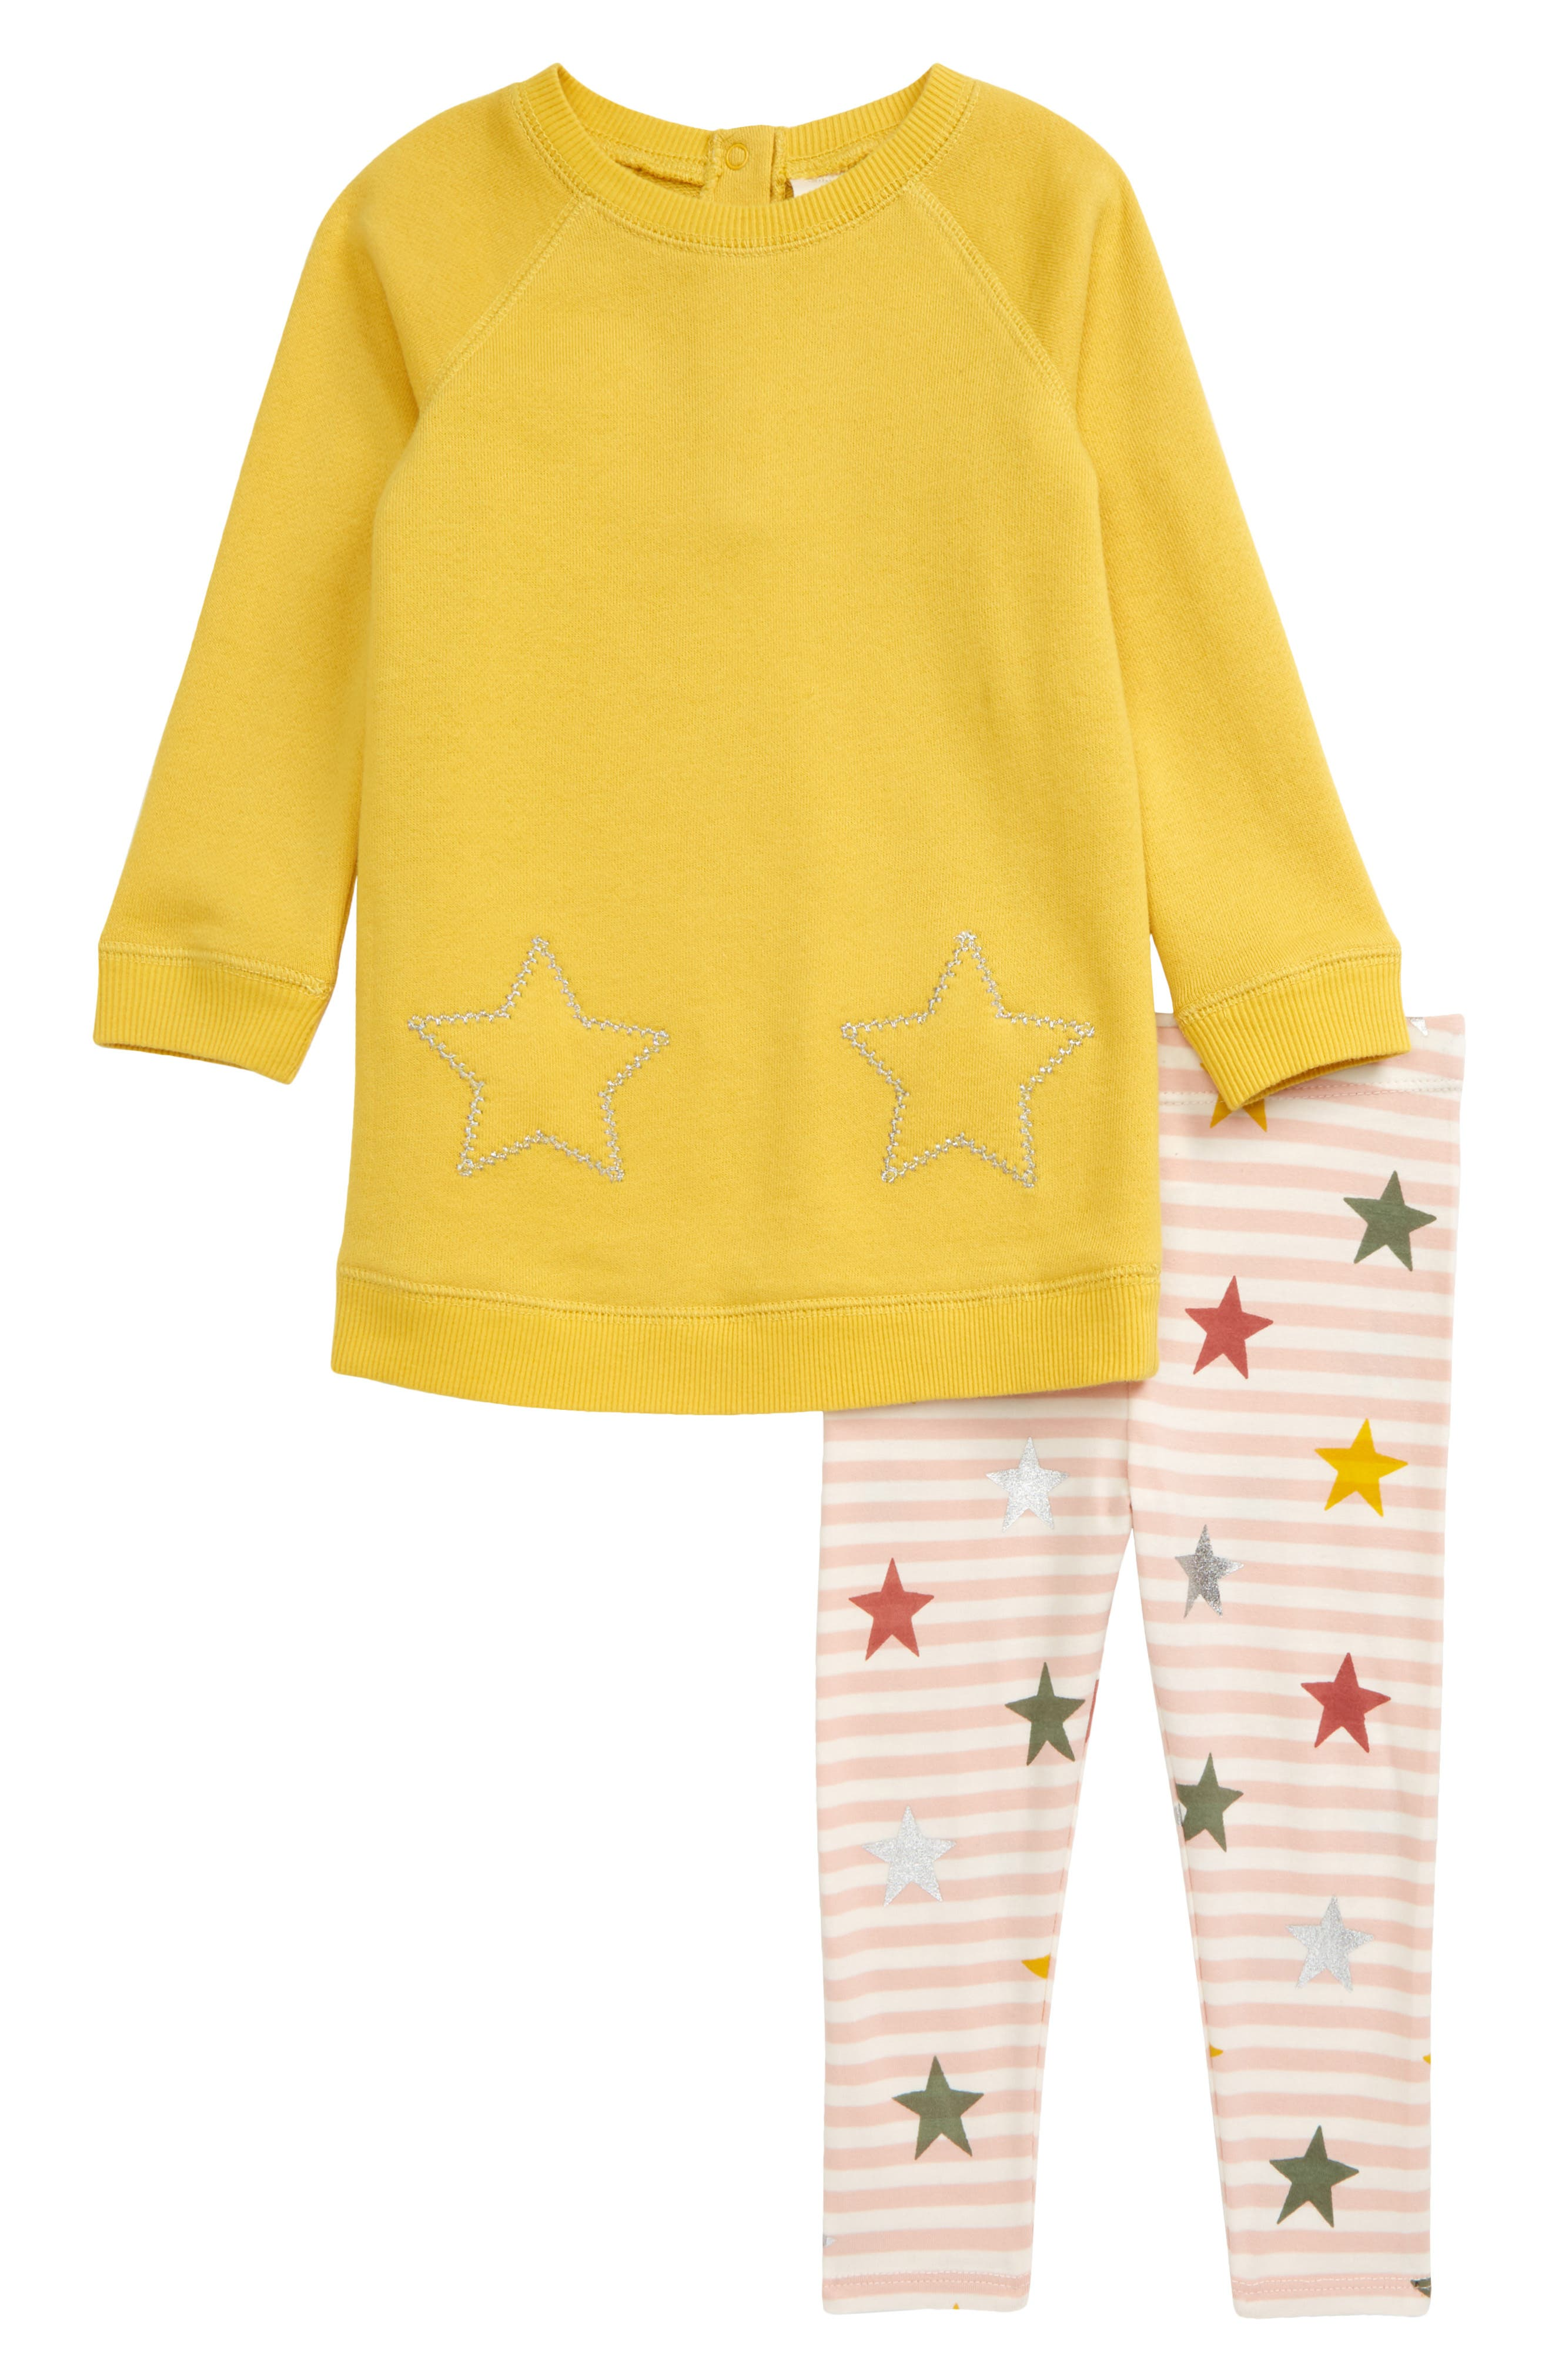 Heathered French terry brings supremely cozy comfort to a sweatshirt-dress sporting embroidered hearts that coordinate with heart-covered striped leggings. Style Name: Tucker + Tate Fleece Dress & Leggings Set (Baby). Style Number: 5781030. Available in stores.